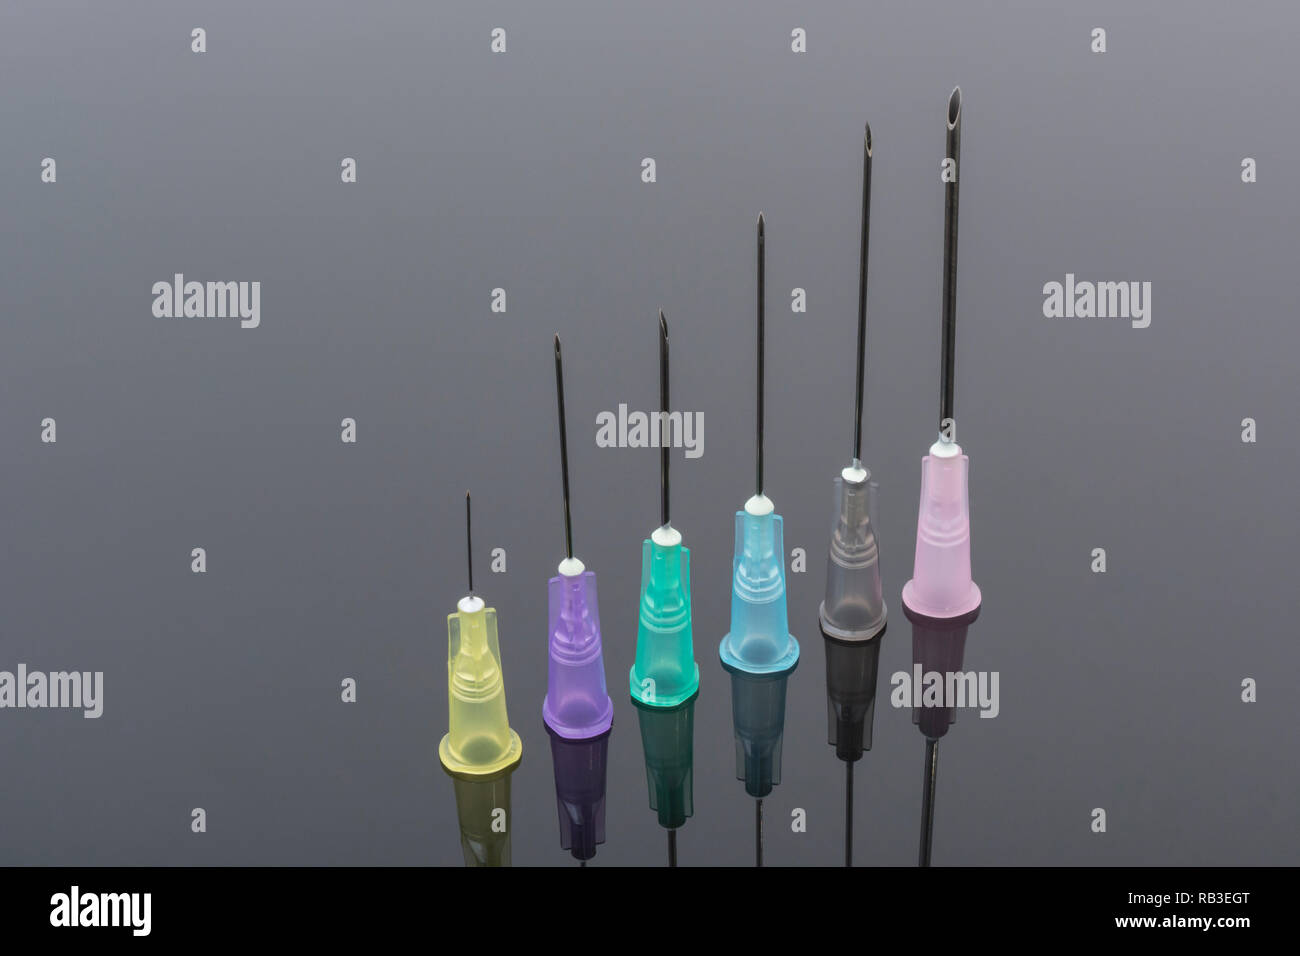 Close-up of hypodermic needles. Specifically BD Microlance brand (see Add. Info). Metaphor NHS, innoculation, flu jab, business cash injection, sharp. - Stock Image